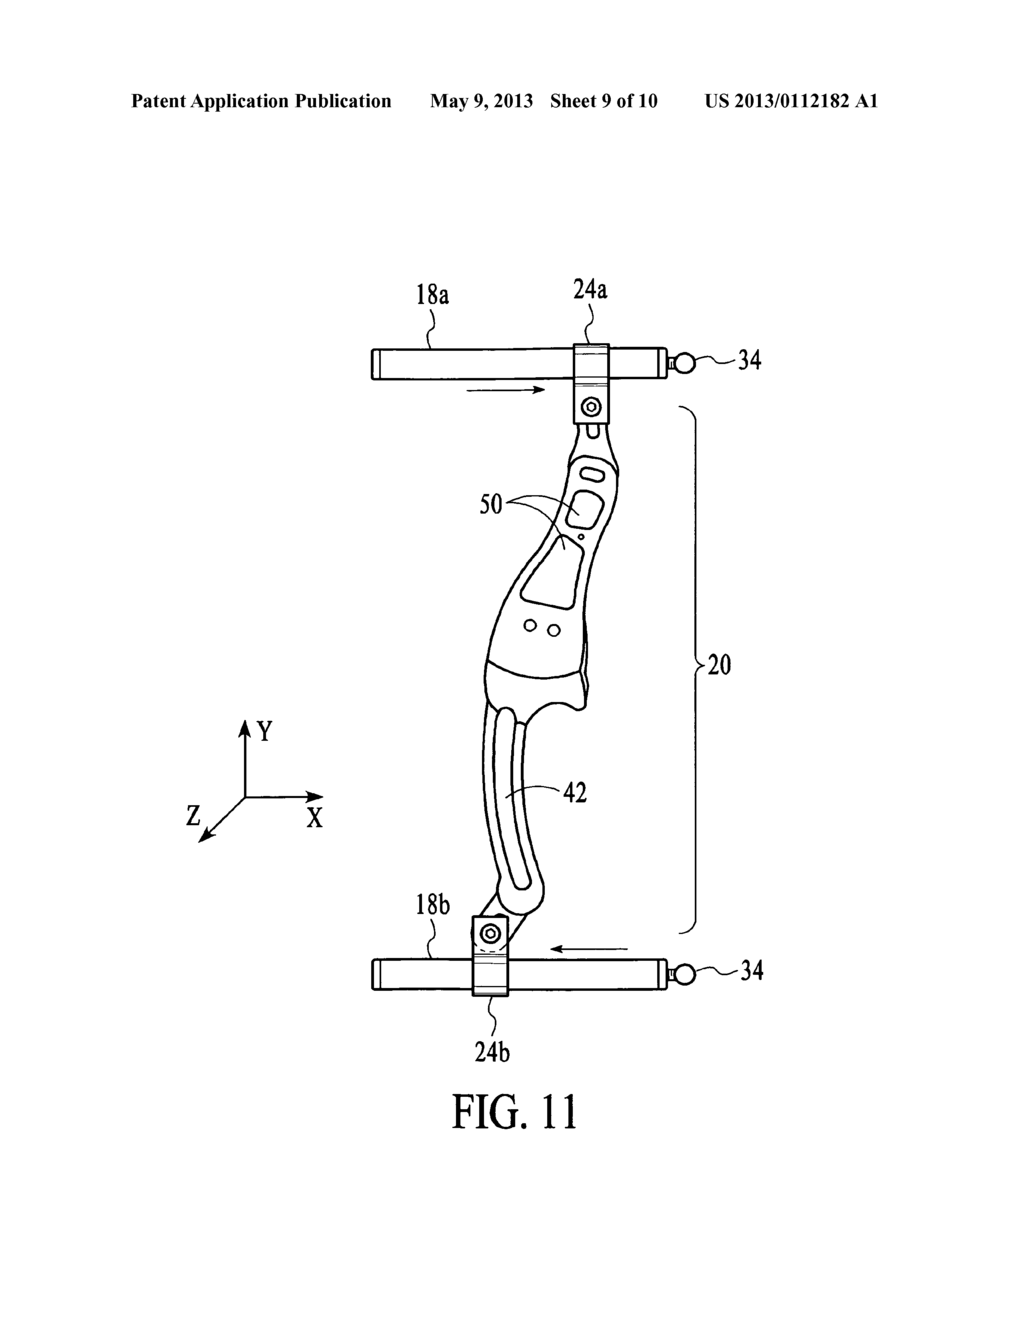 hight resolution of archery bows with brace rod receivers and brace rods for mounting bow handle grip in variable positions relative to archery bows diagram schematic